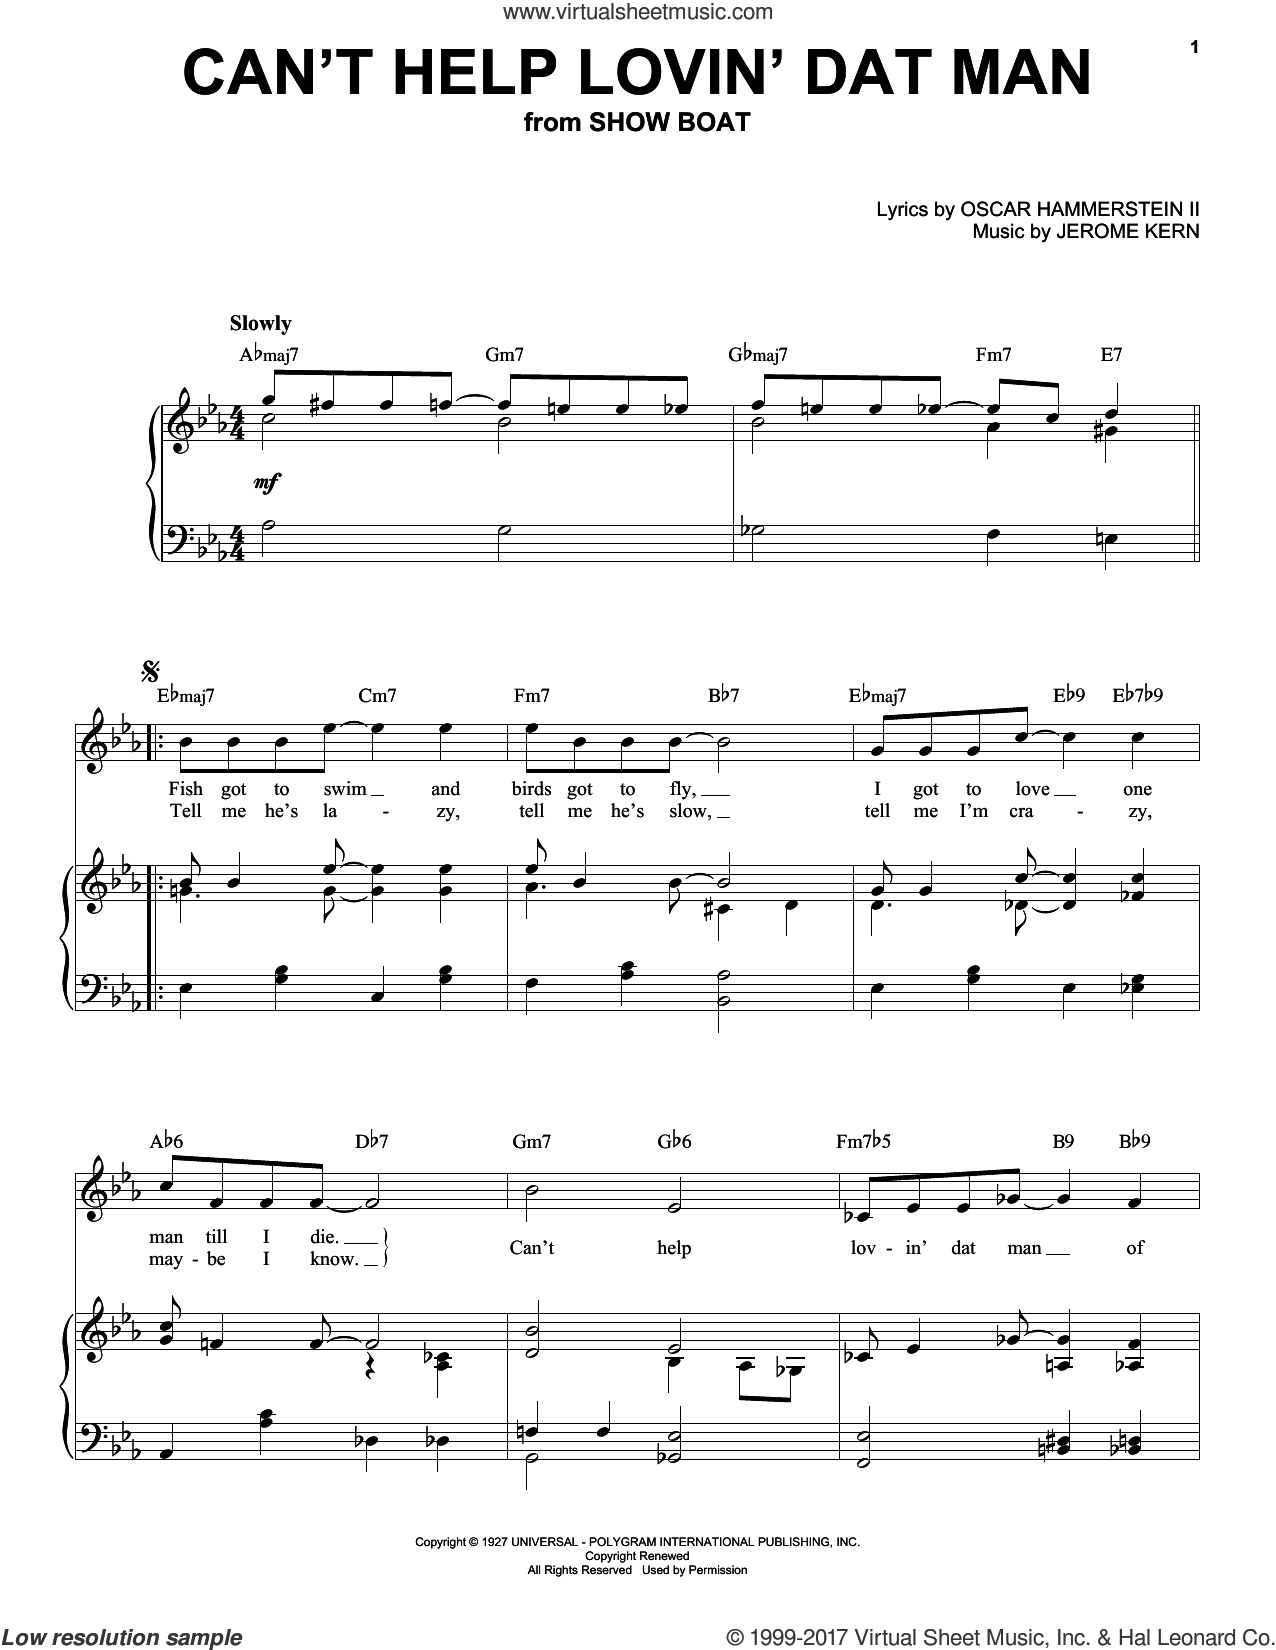 Can't Help Lovin' Dat Man sheet music for voice and piano (High Voice) by Jerome Kern, Annette Warren and Helen Morgan, intermediate skill level